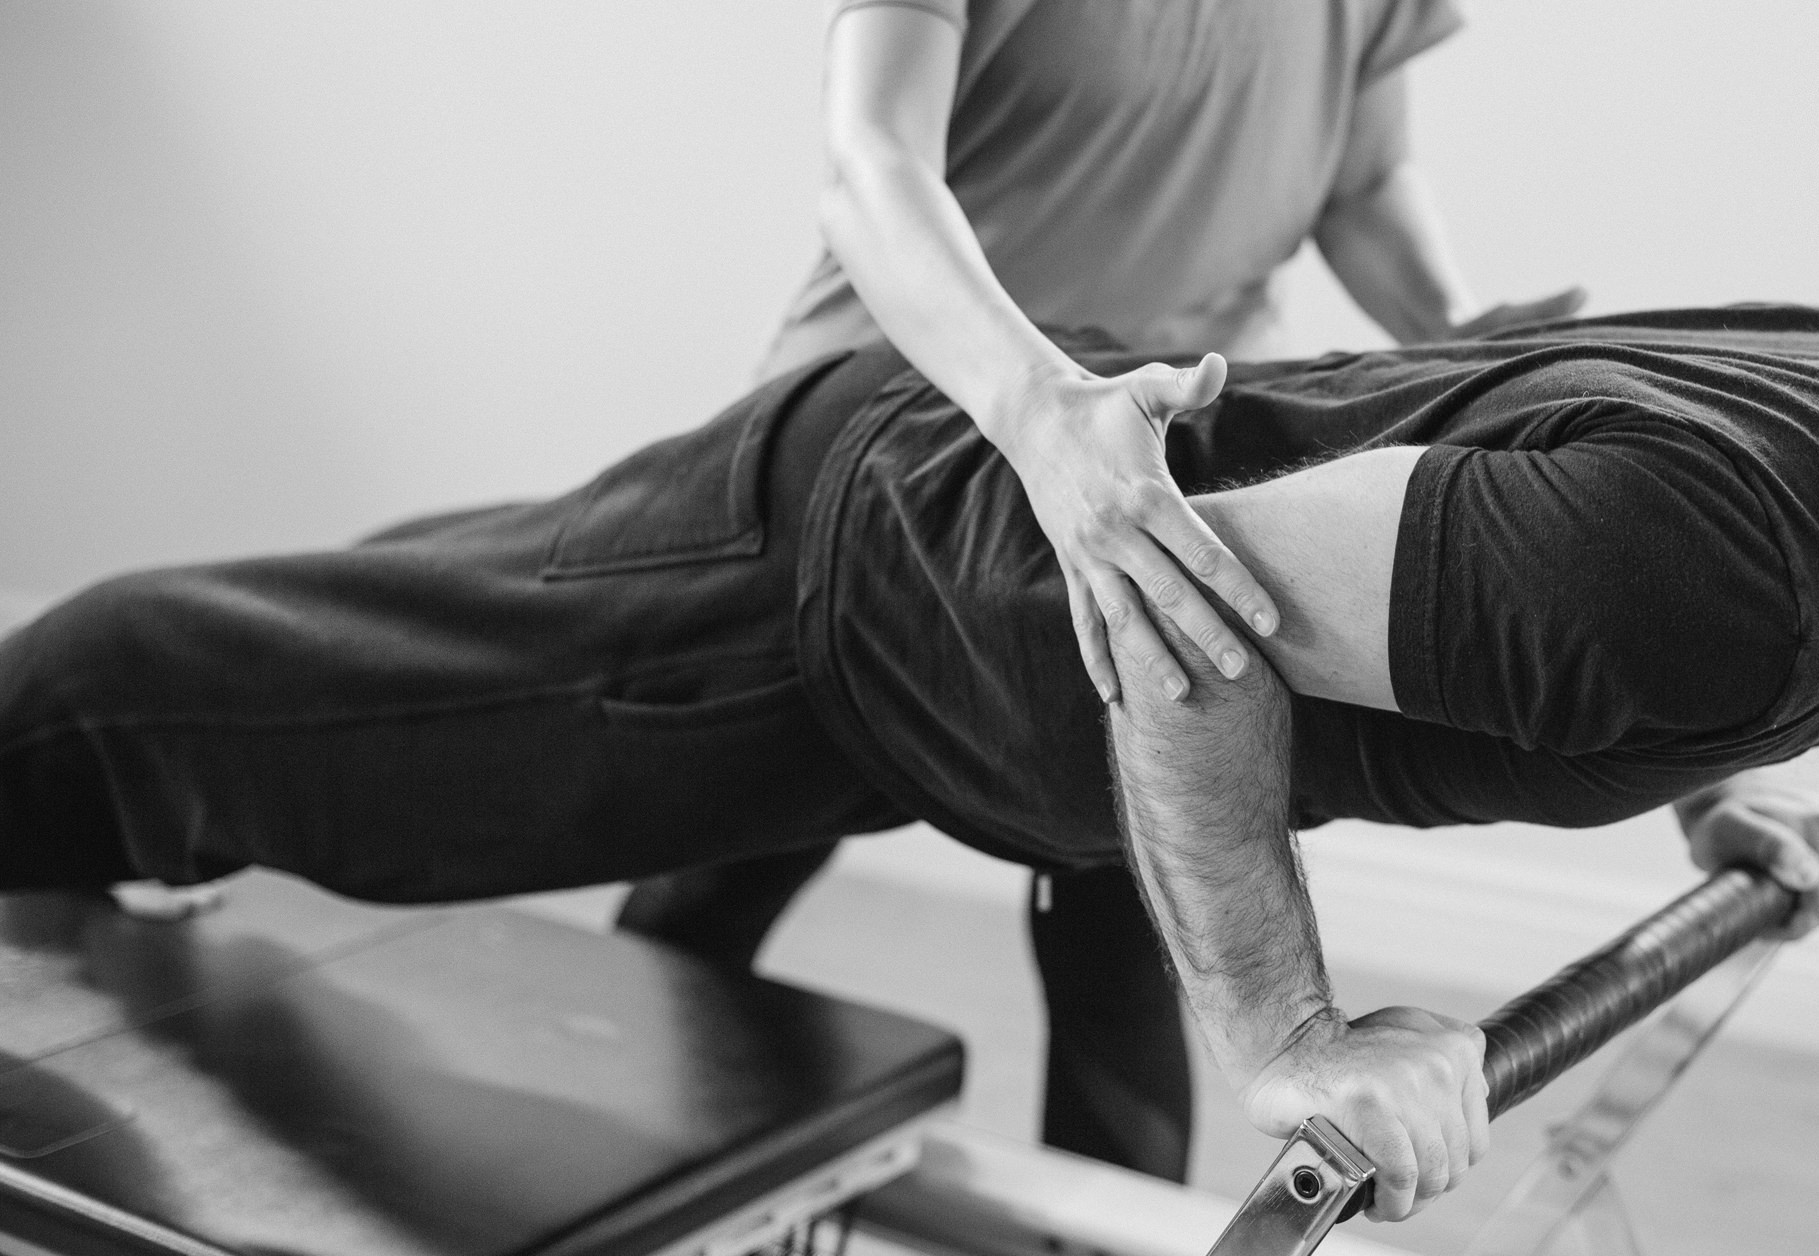 Private Pilates training sessions on the Reformer